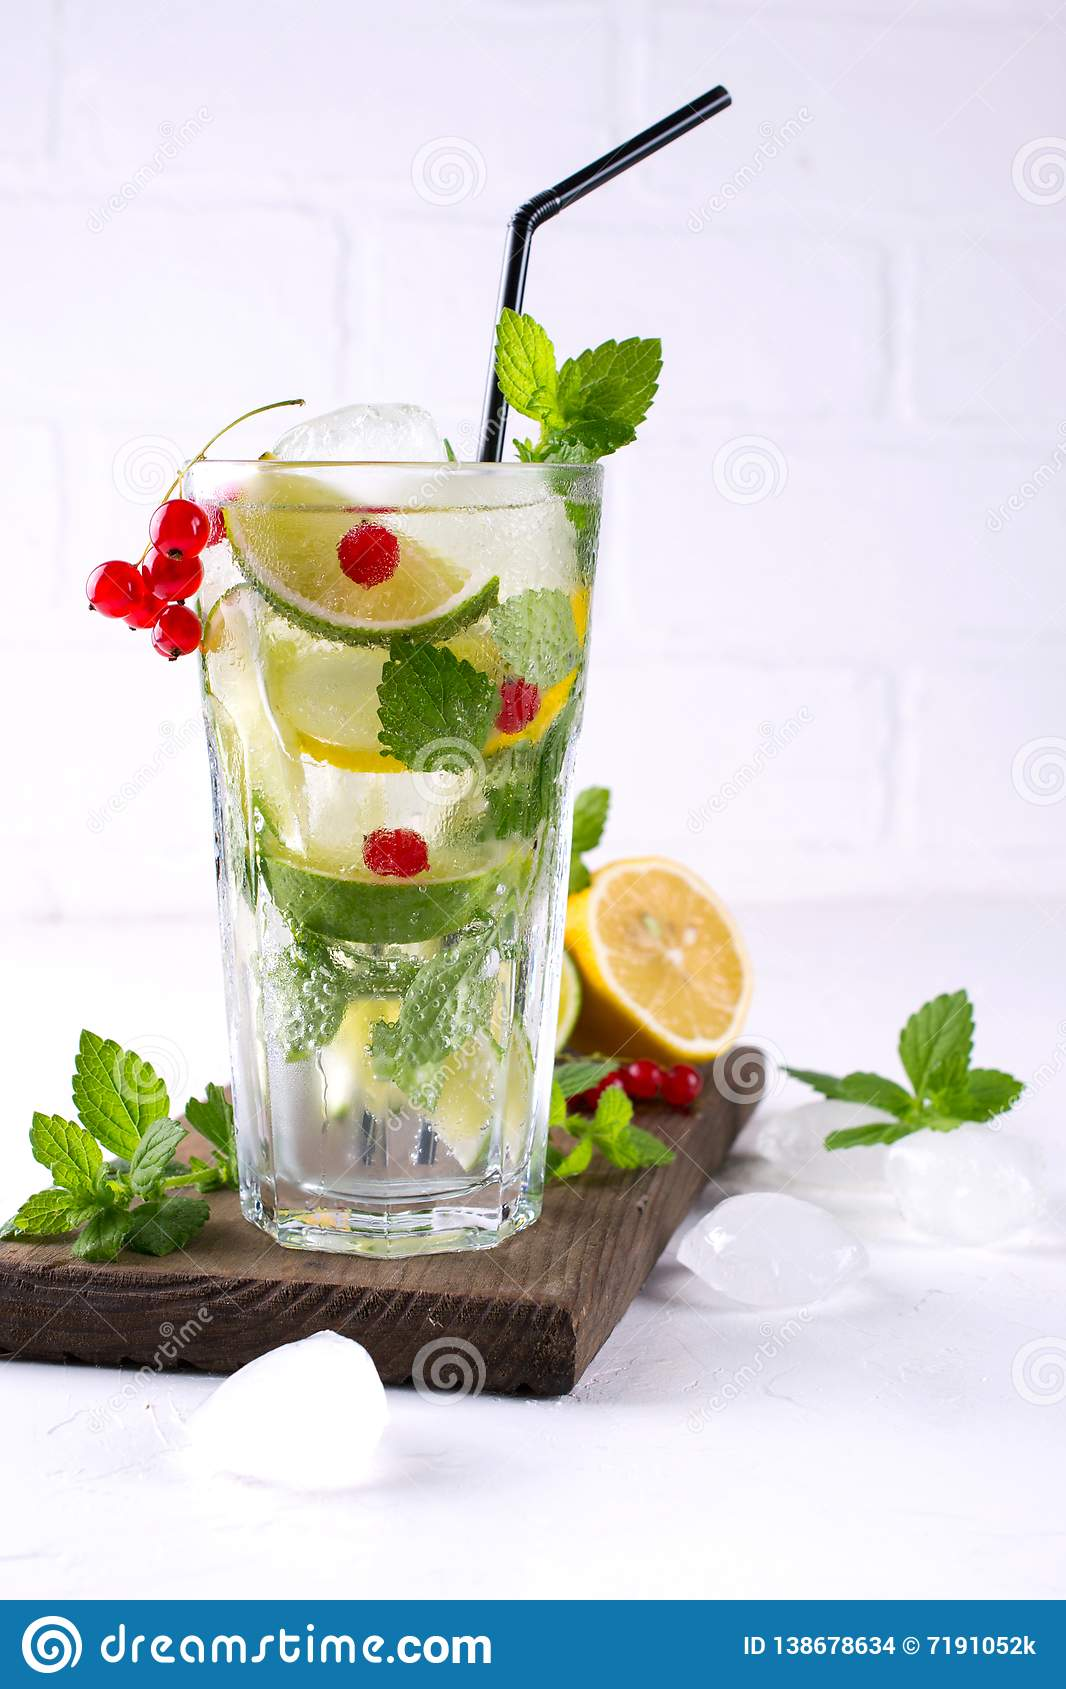 Home made mojito cocktail with lemon, lime, mint leaves, with ice and red currant